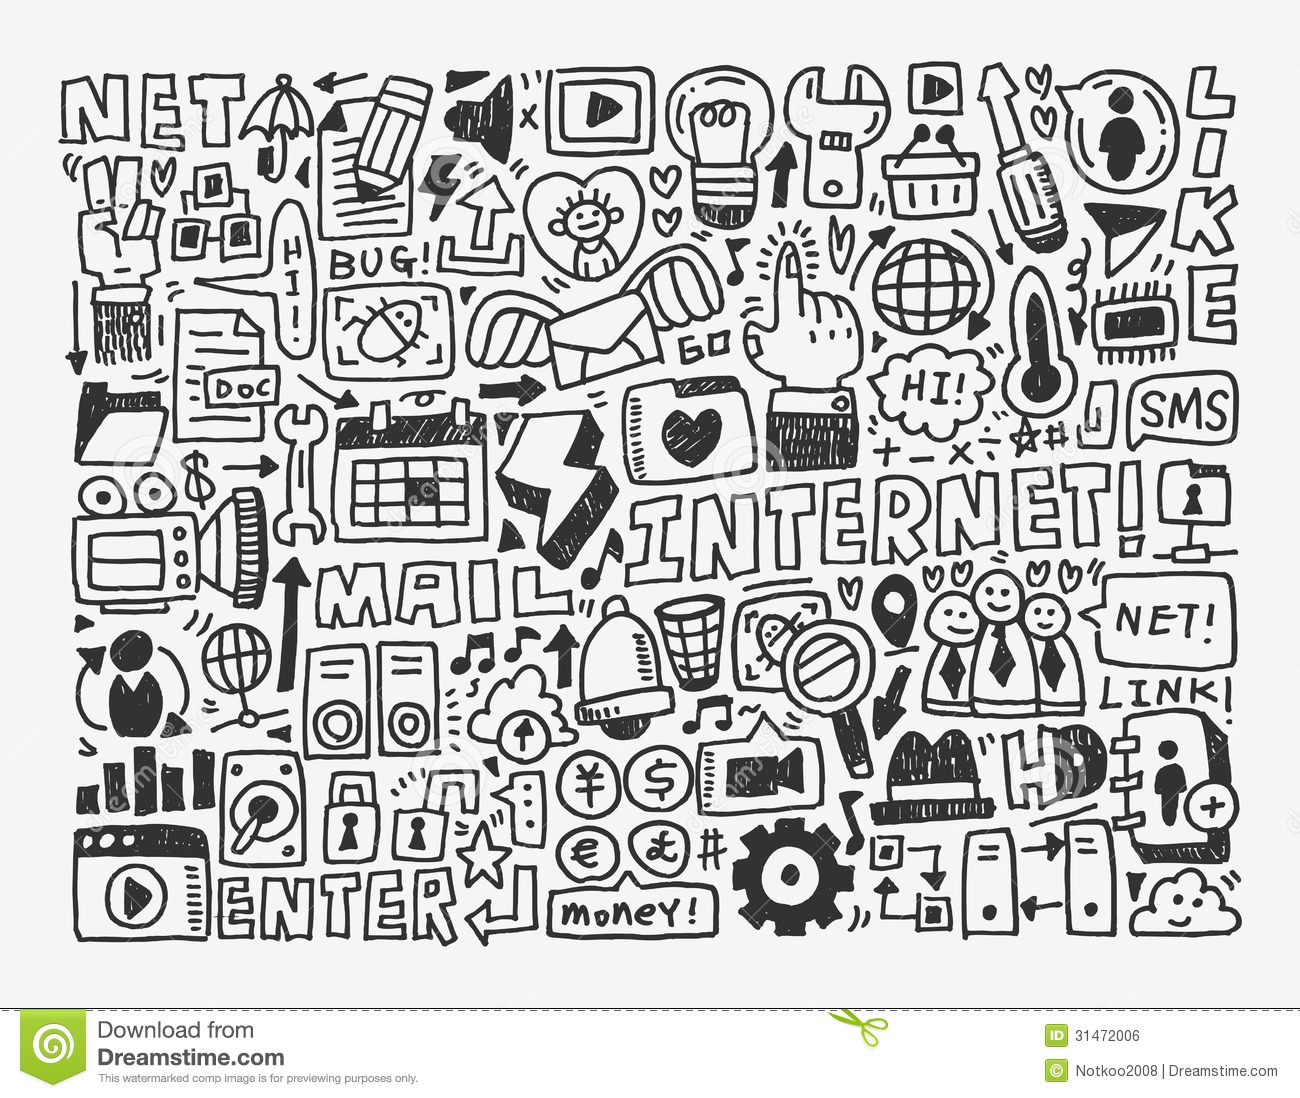 Doodle network element stock vector. Illustration of communications ...